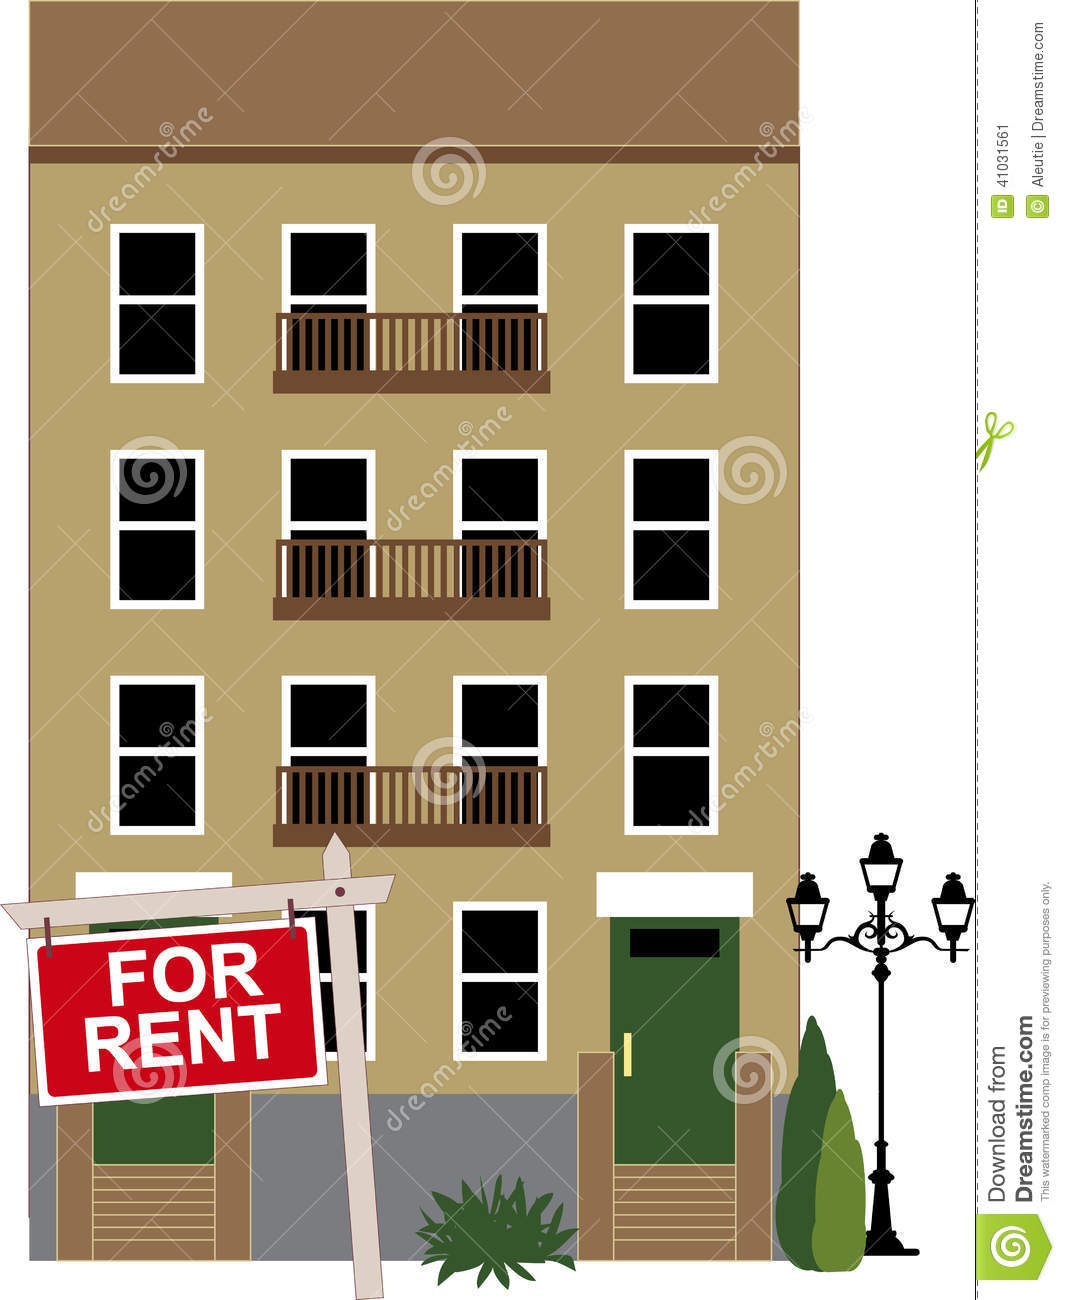 Apartmentrent: Apartment For Rent Stock Vector. Image Of Illustration